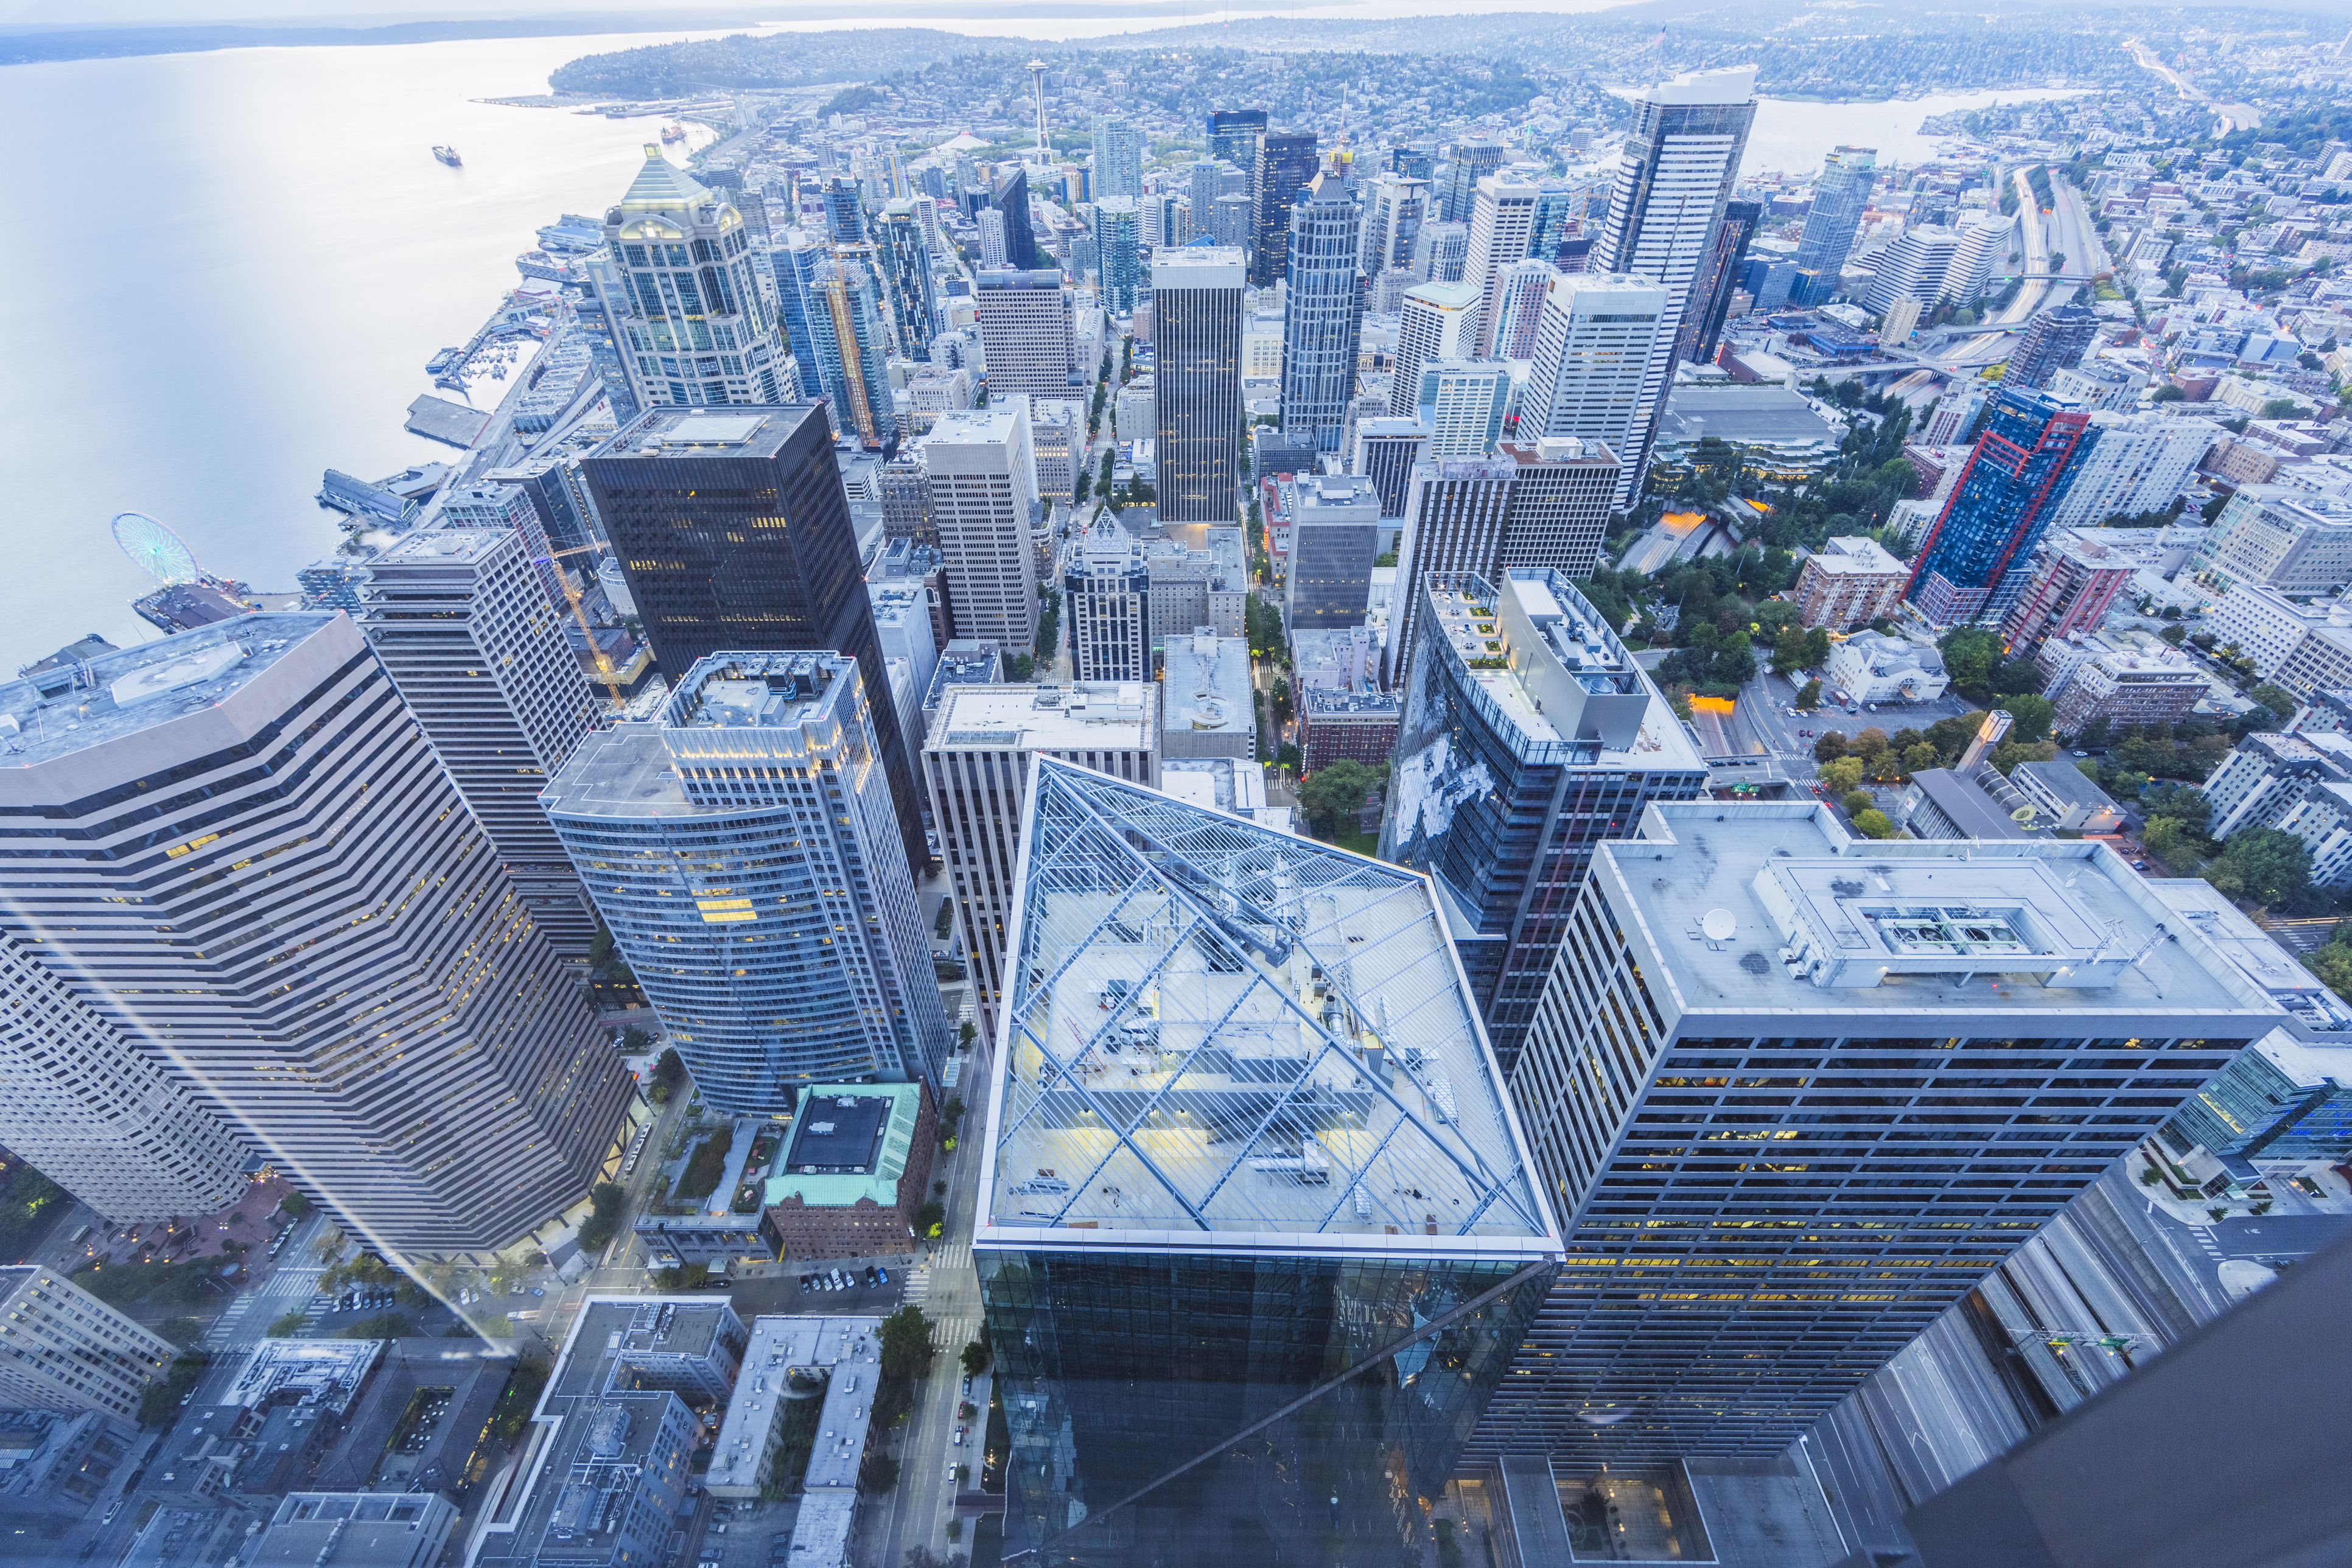 Is Seattle Ready for a Major Earthquake?